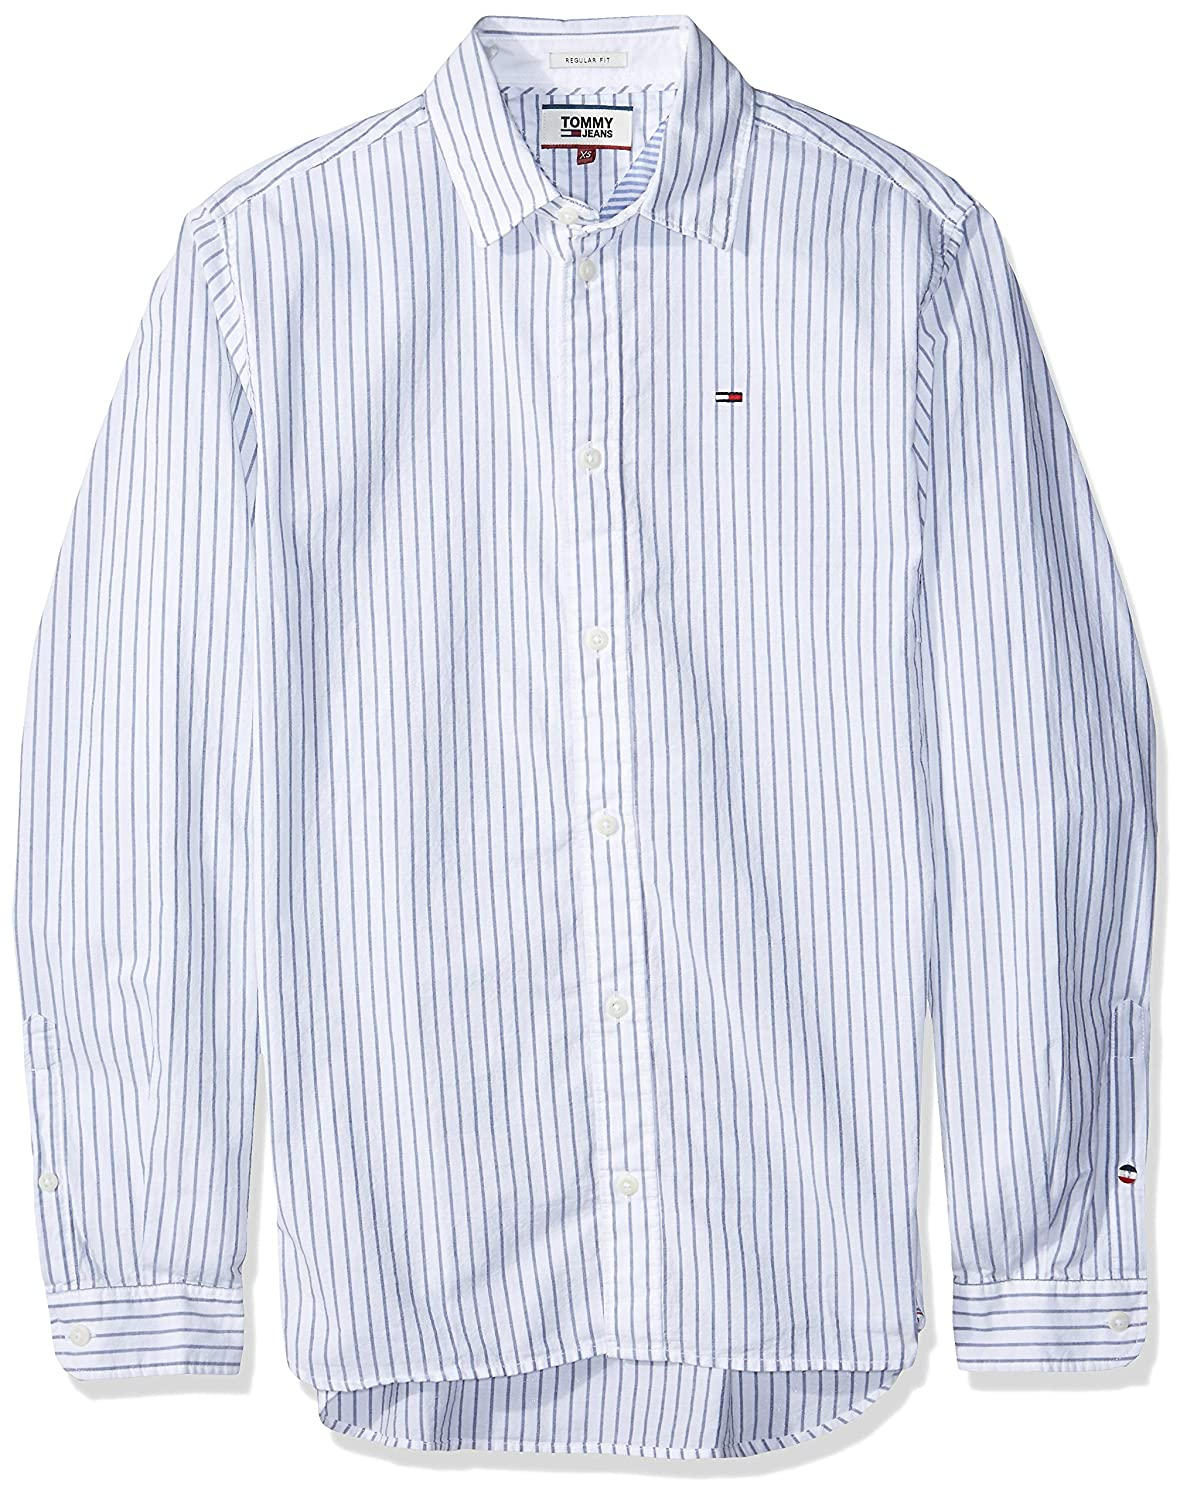 Tommy Jeans Hombre Essential Striped Camisa Manga Larga